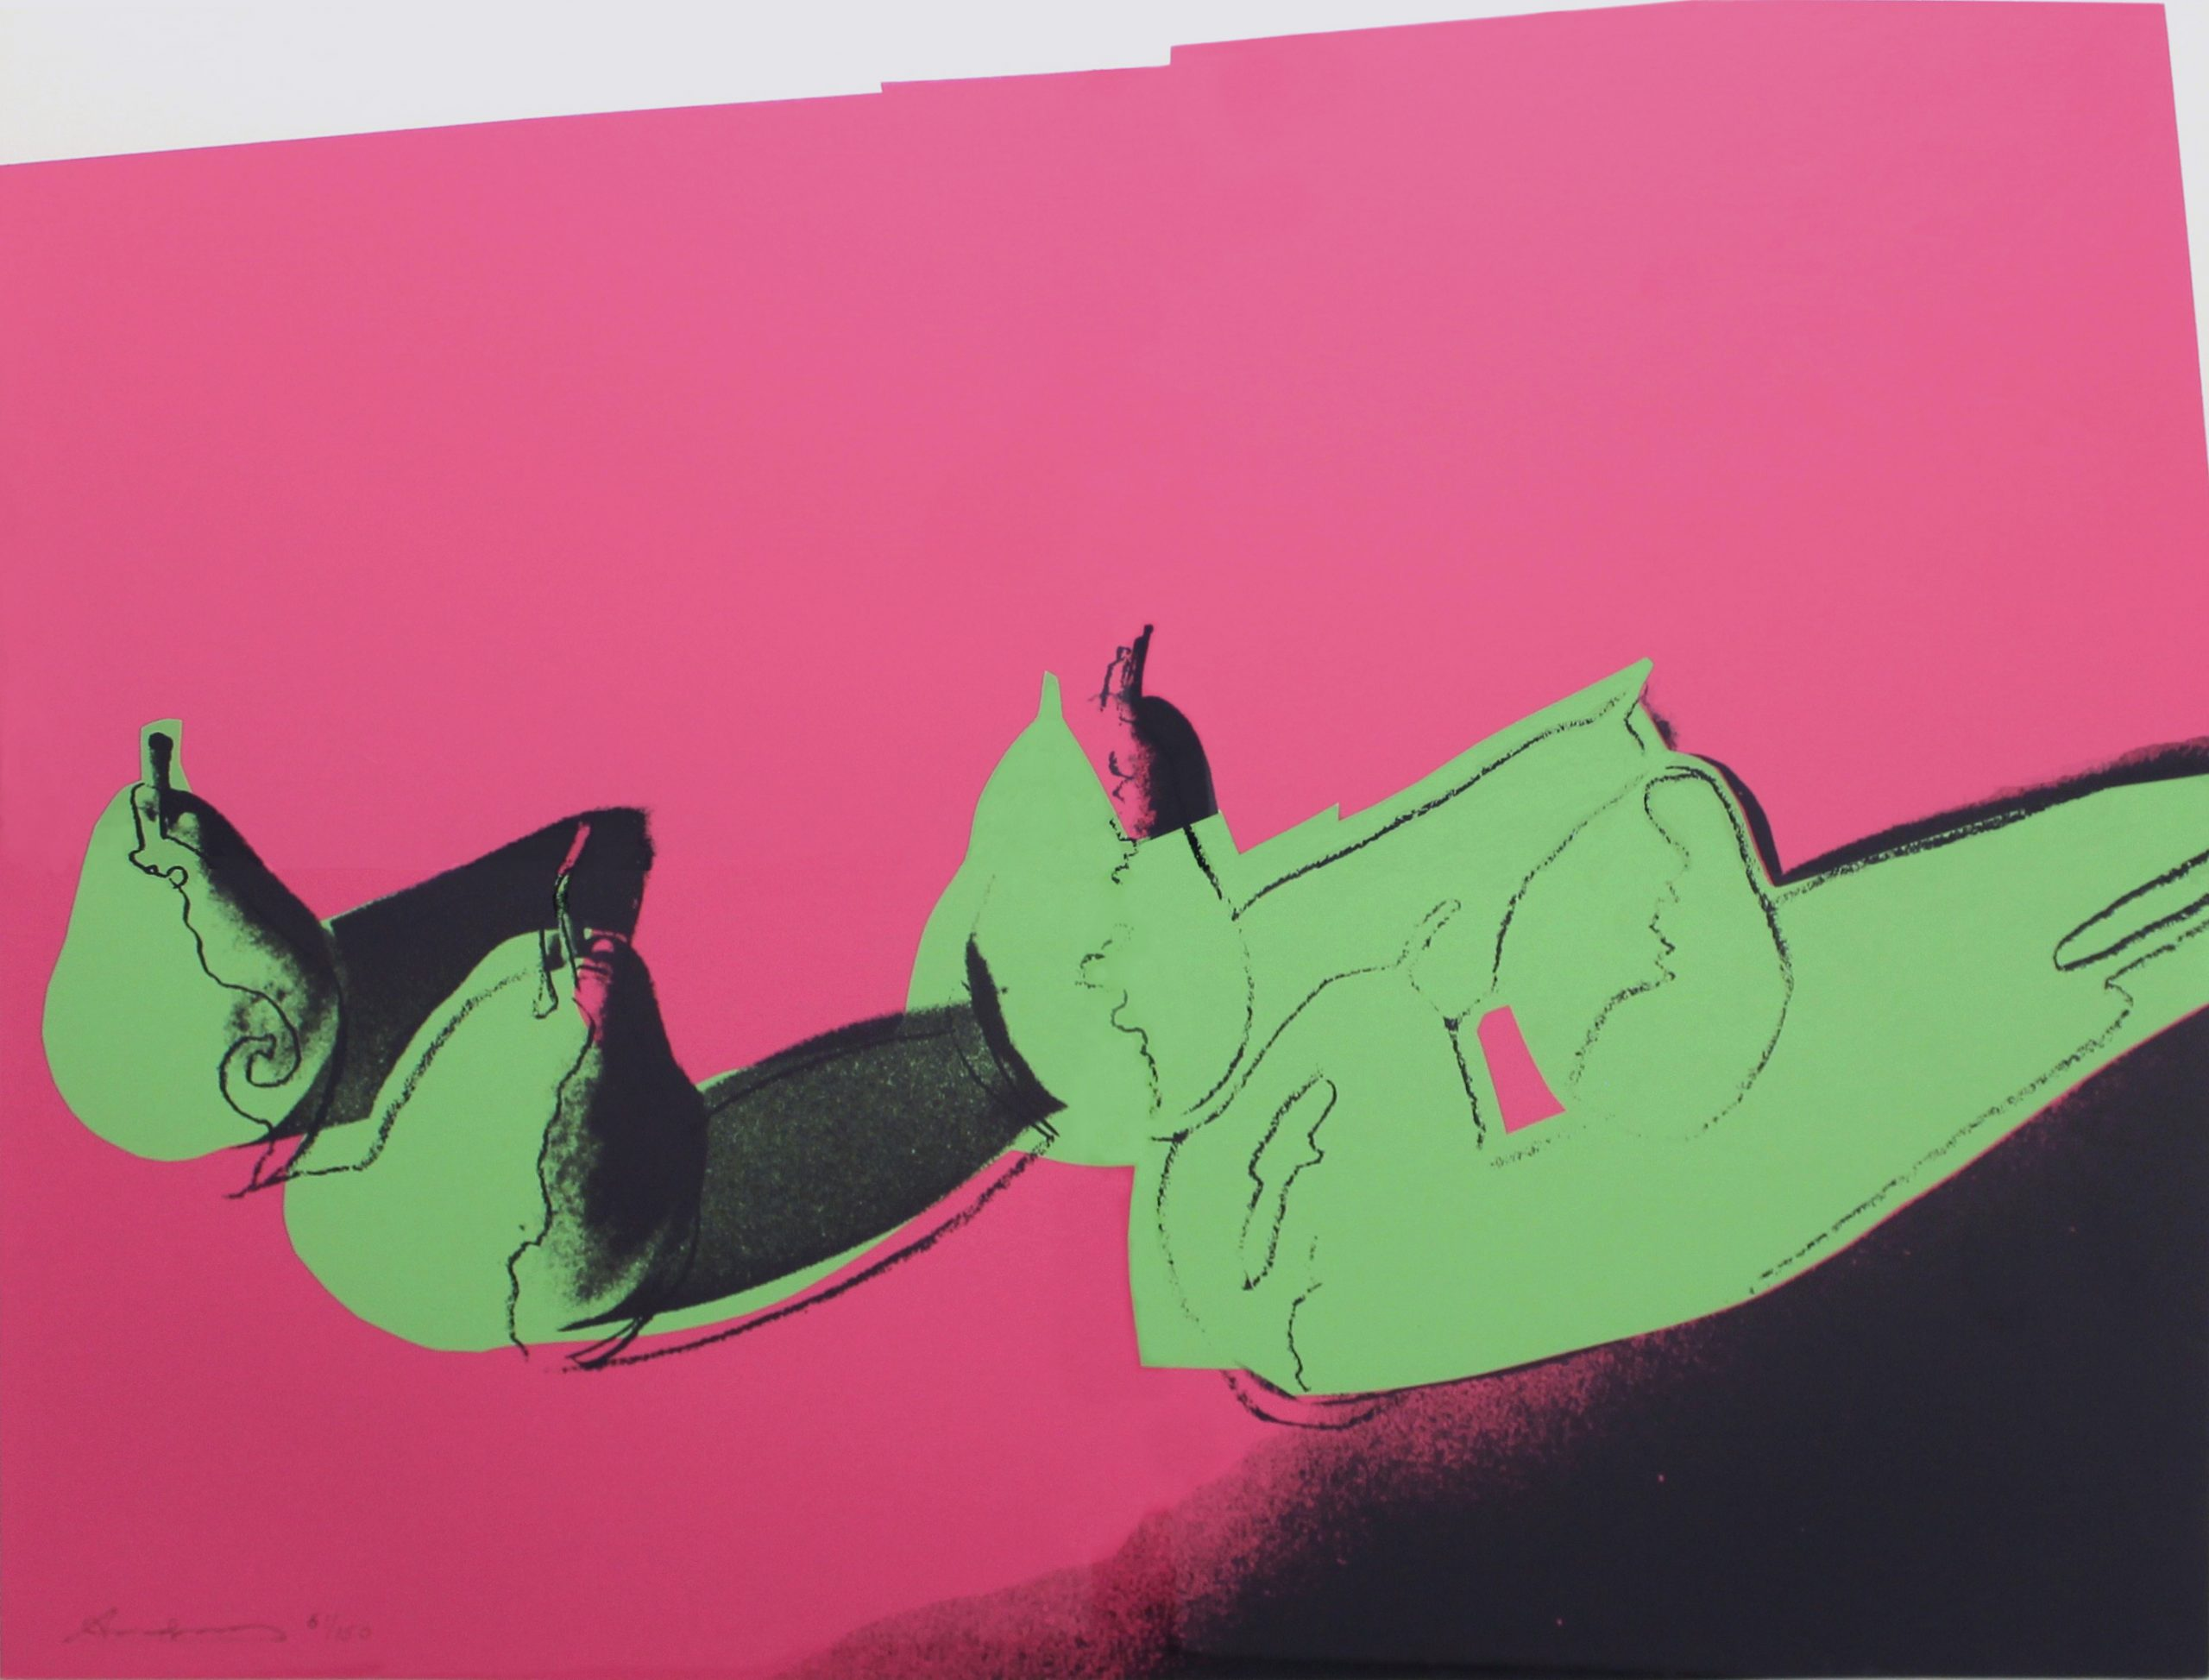 Space Fruit: Pears (fs Ii.203) by Andy Warhol